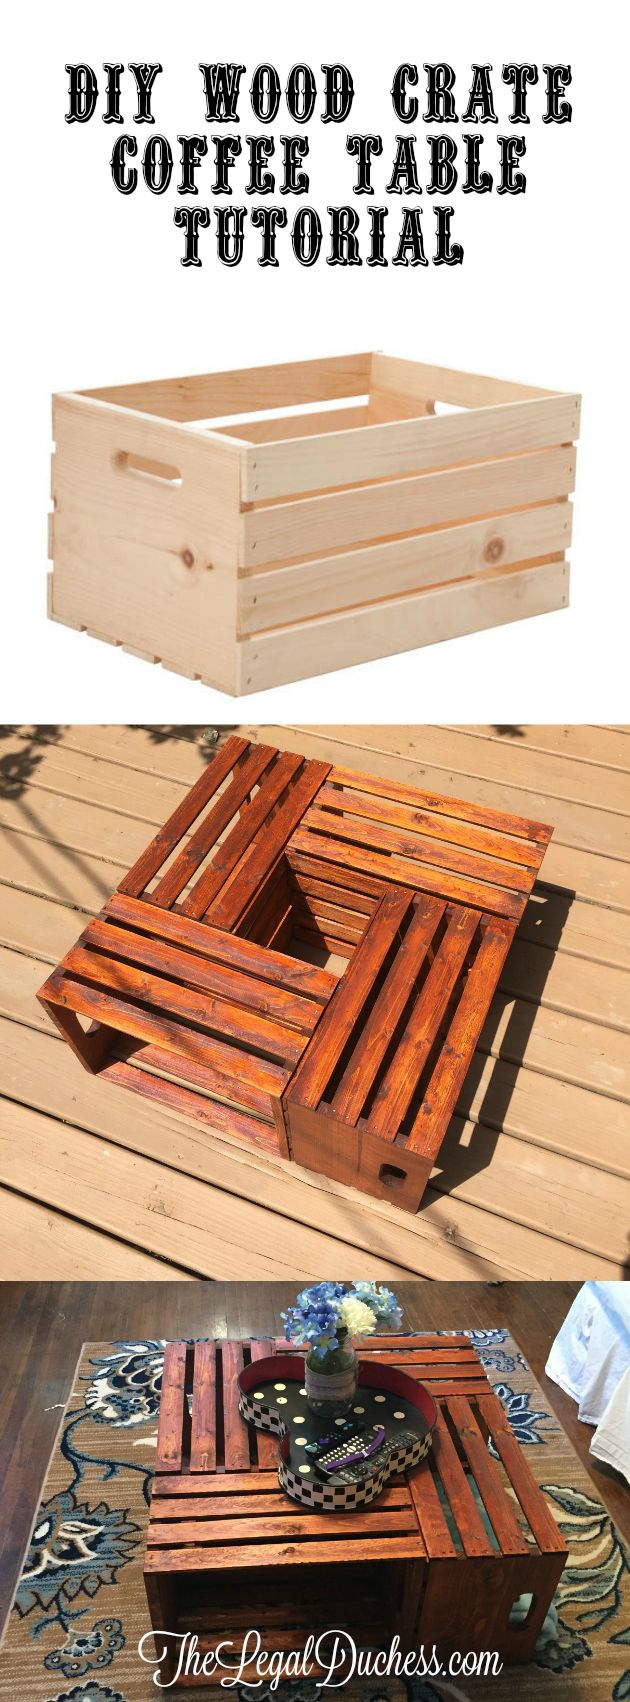 DIY Wooden Crate Coffee Table - 25+ Best Ideas About Crate Coffee Tables On Pinterest Wine Crate